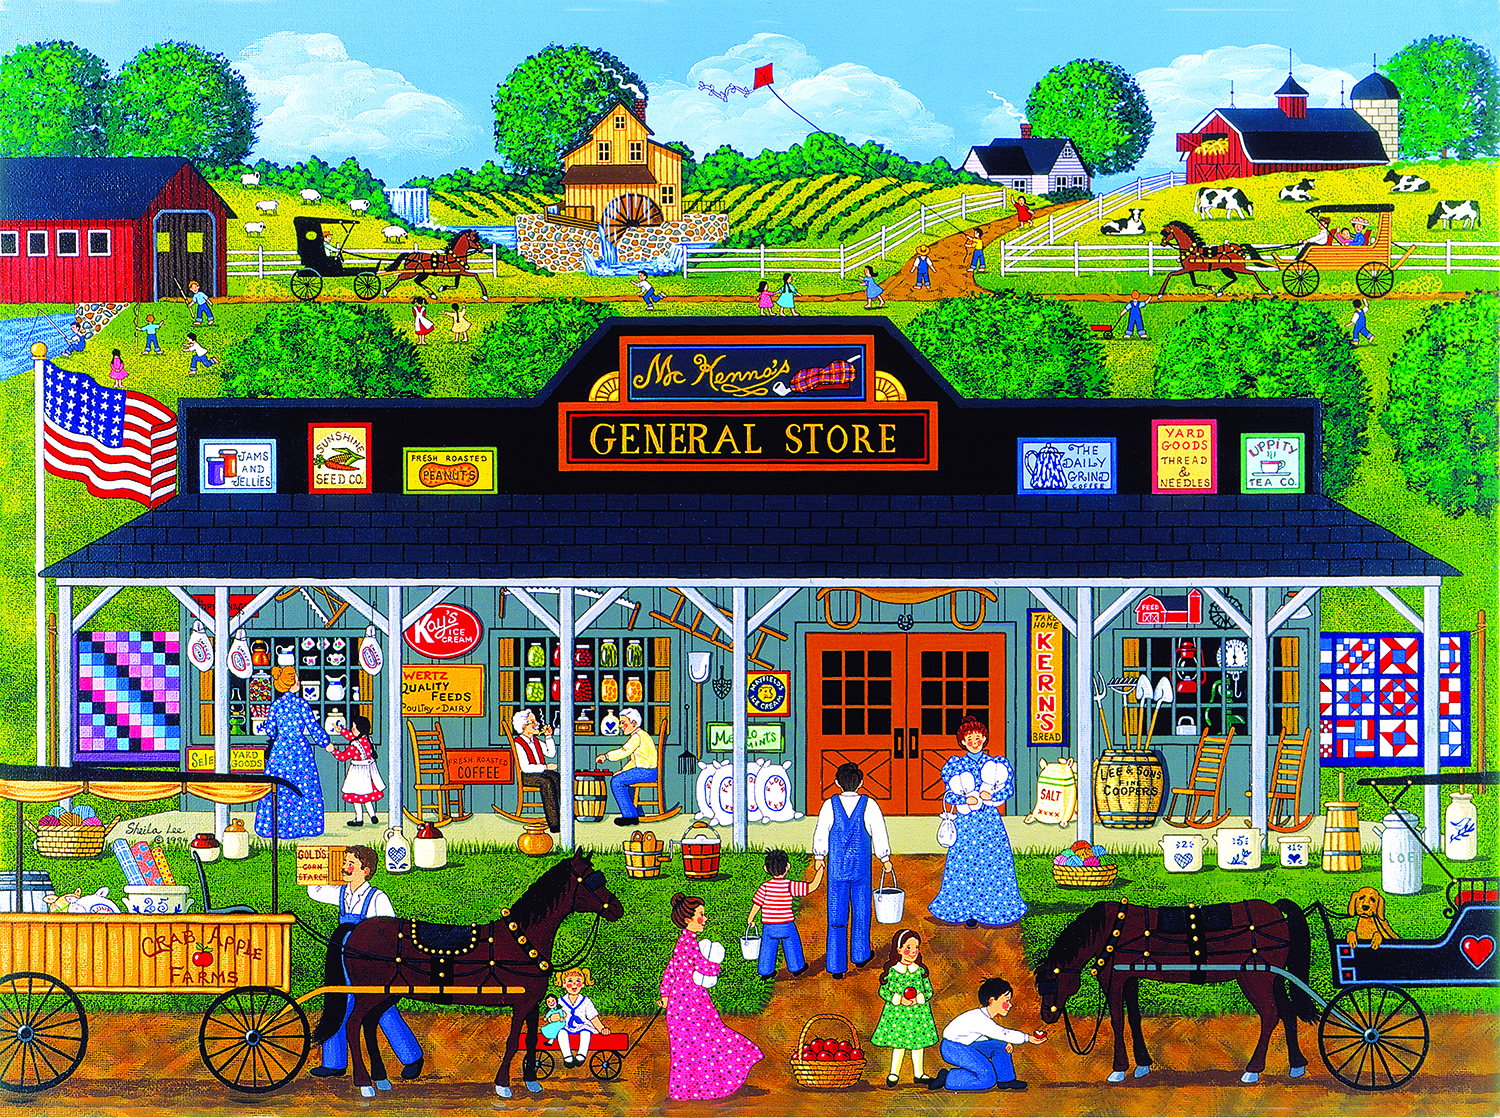 McKenna's General Store 1000 pc Jigsaw Puzzle by SunsOut